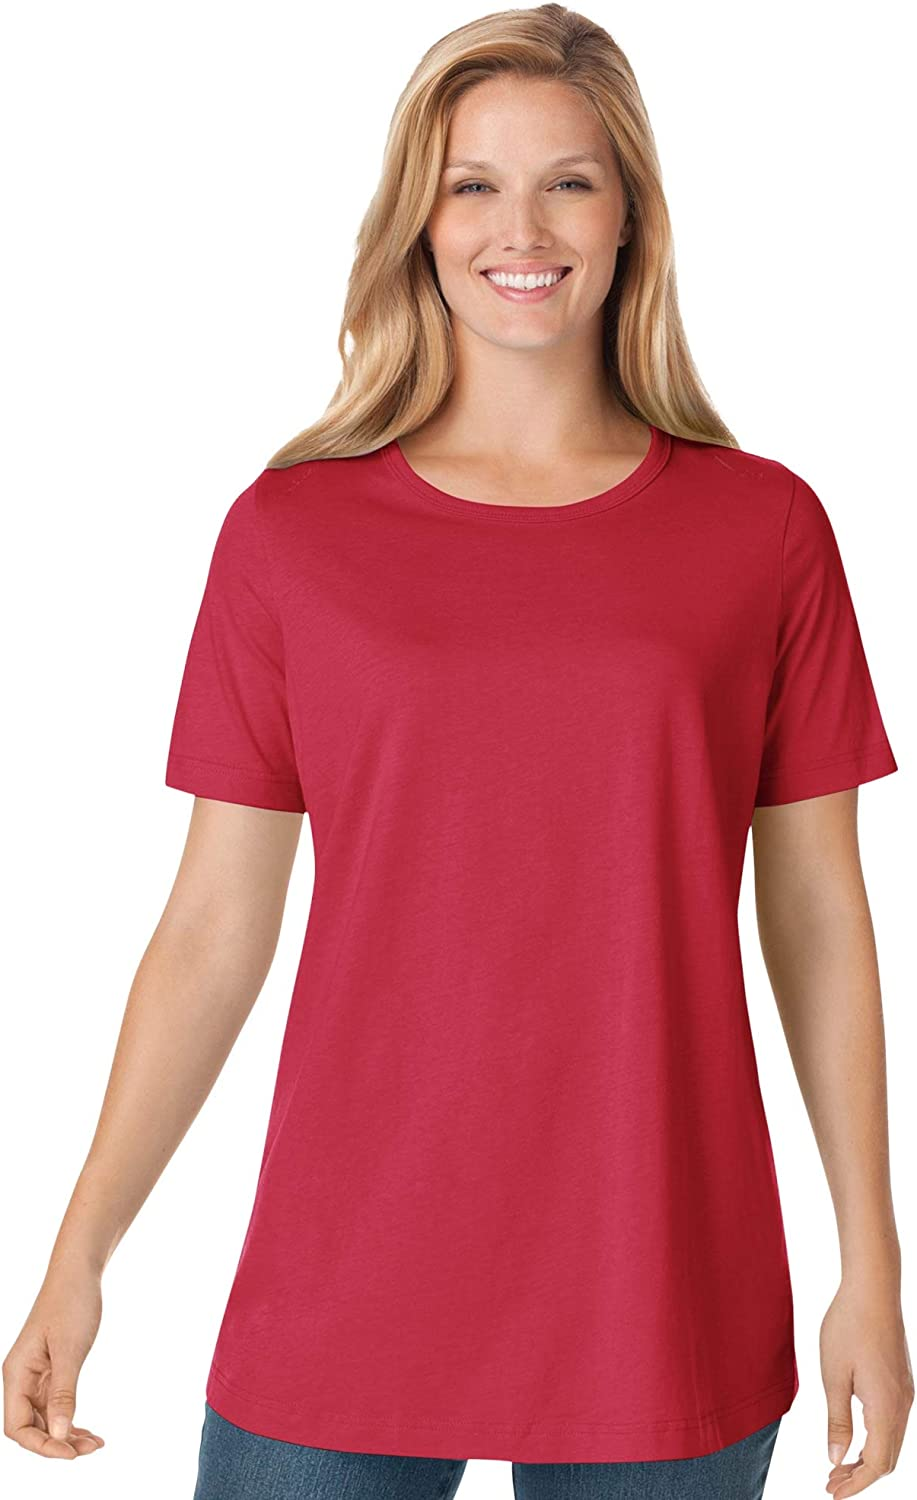 Woman Within Women's Plus Size Perfect Short-Sleeve Crewneck Tee